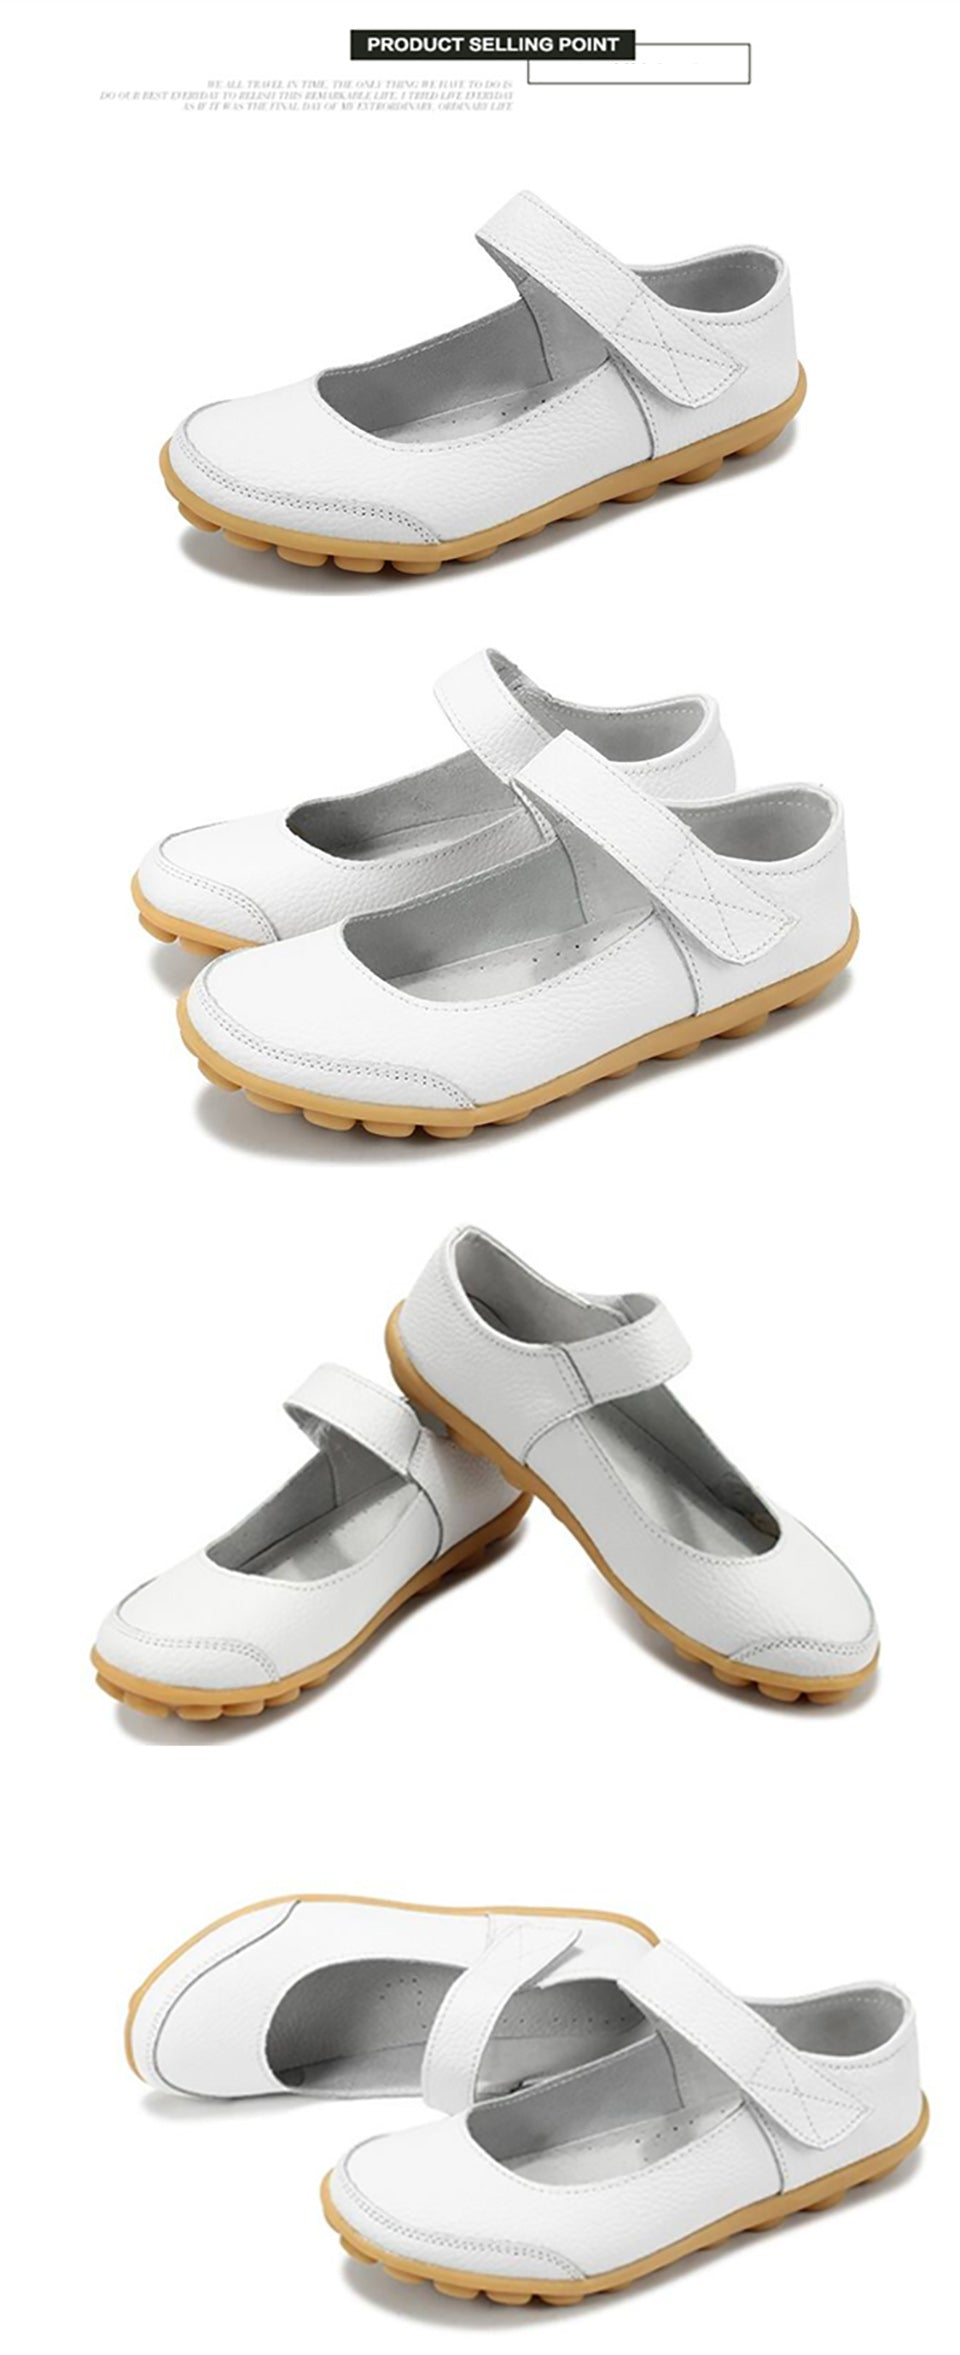 white mary jane nodule shoes with the velcro securing strap